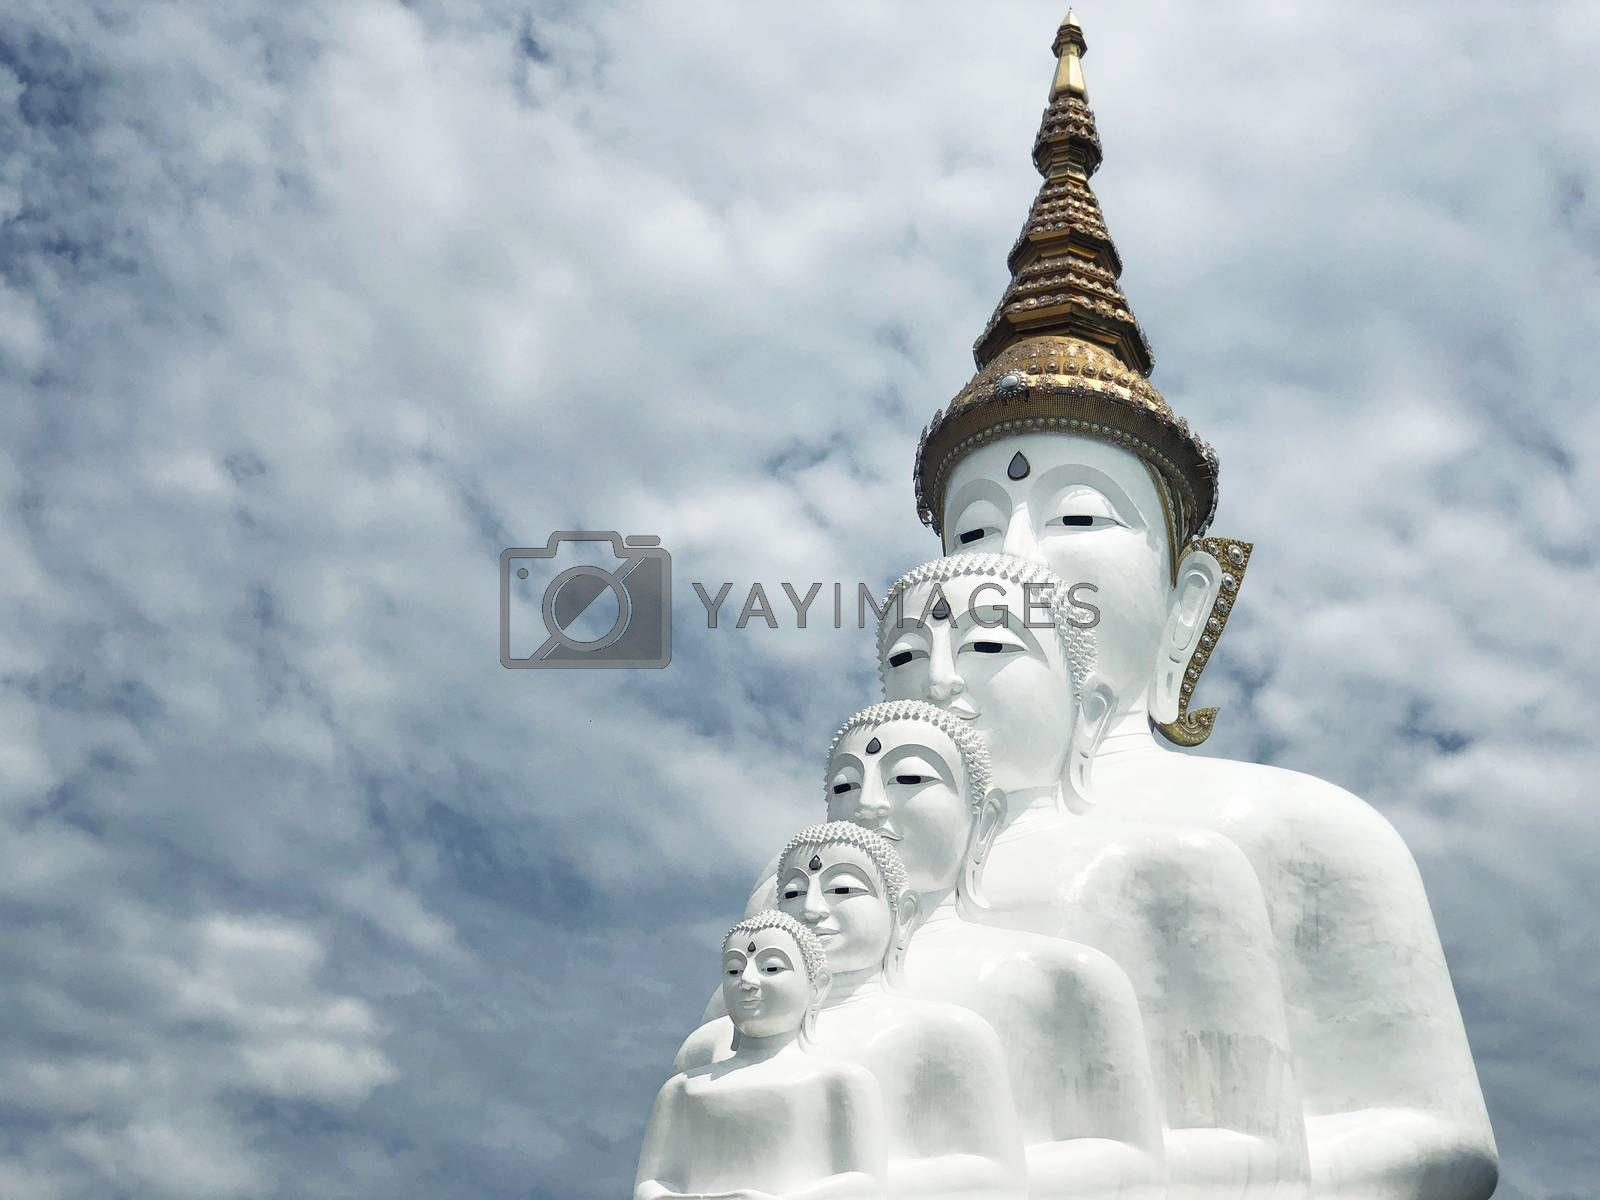 White Buddha Statue and cloud background at Wat Prathat Phasornkaew Thailand